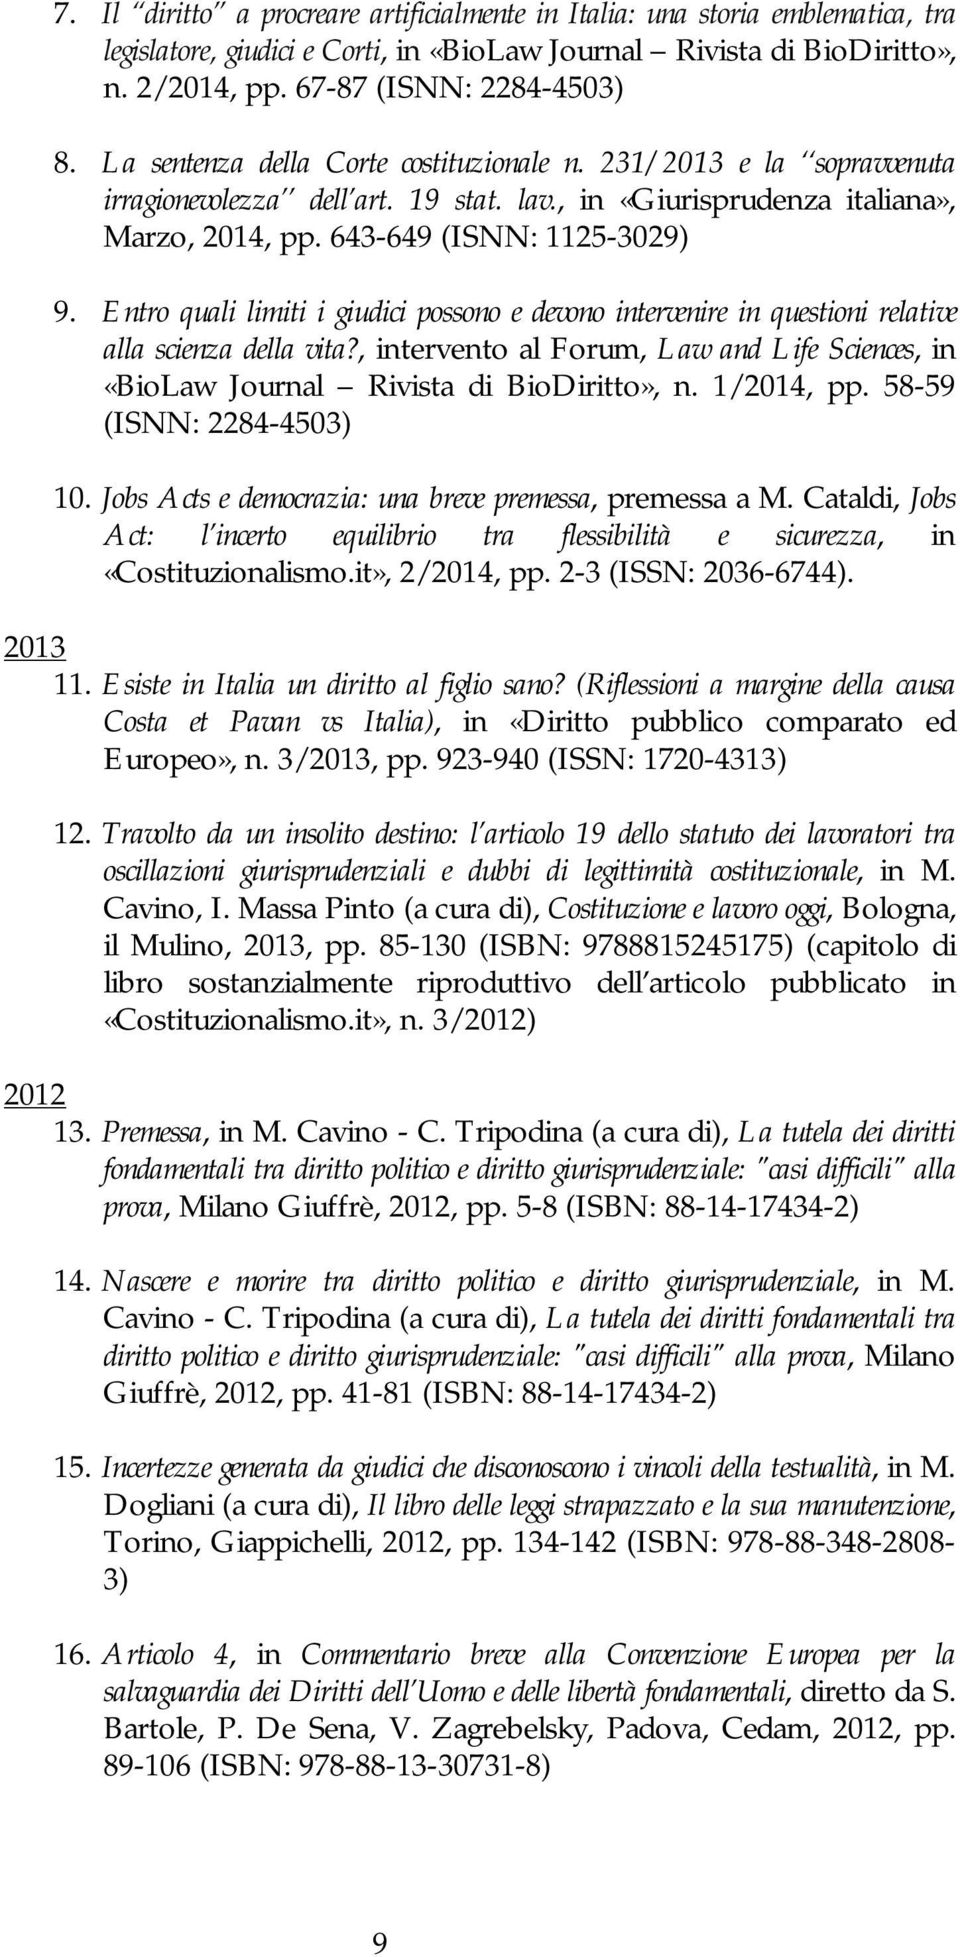 Entro quali limiti i giudici possono e devono intervenire in questioni relative alla scienza della vita?, intervento al Forum, Law and Life Sciences, in «BioLaw Journal Rivista di BioDiritto», n.